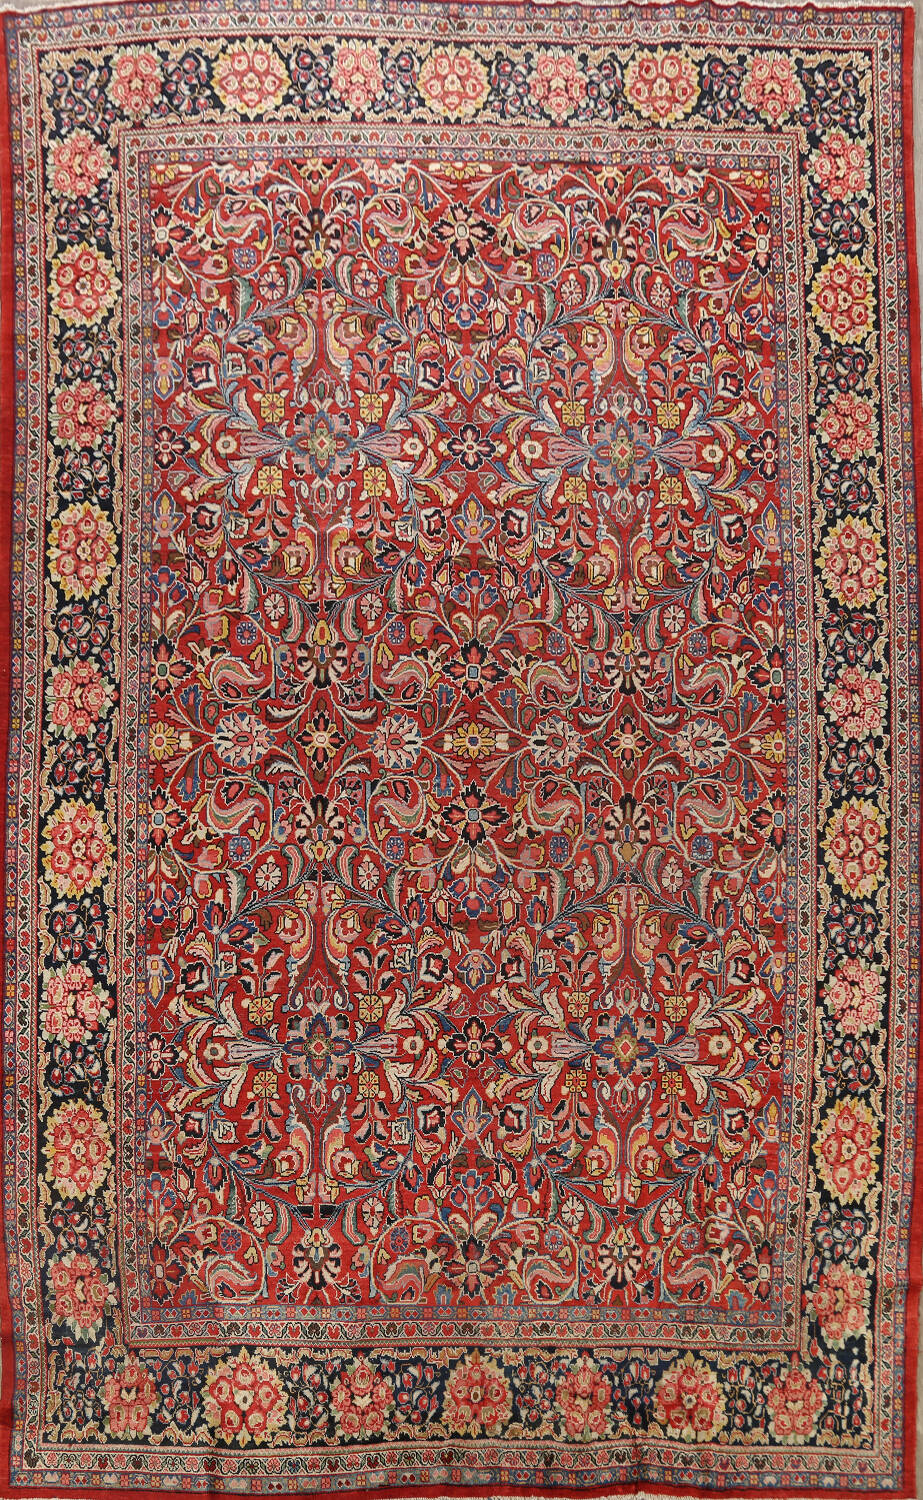 Antique Vegetable Dye Sultanabad Persian Area Rug 10x14 image 1